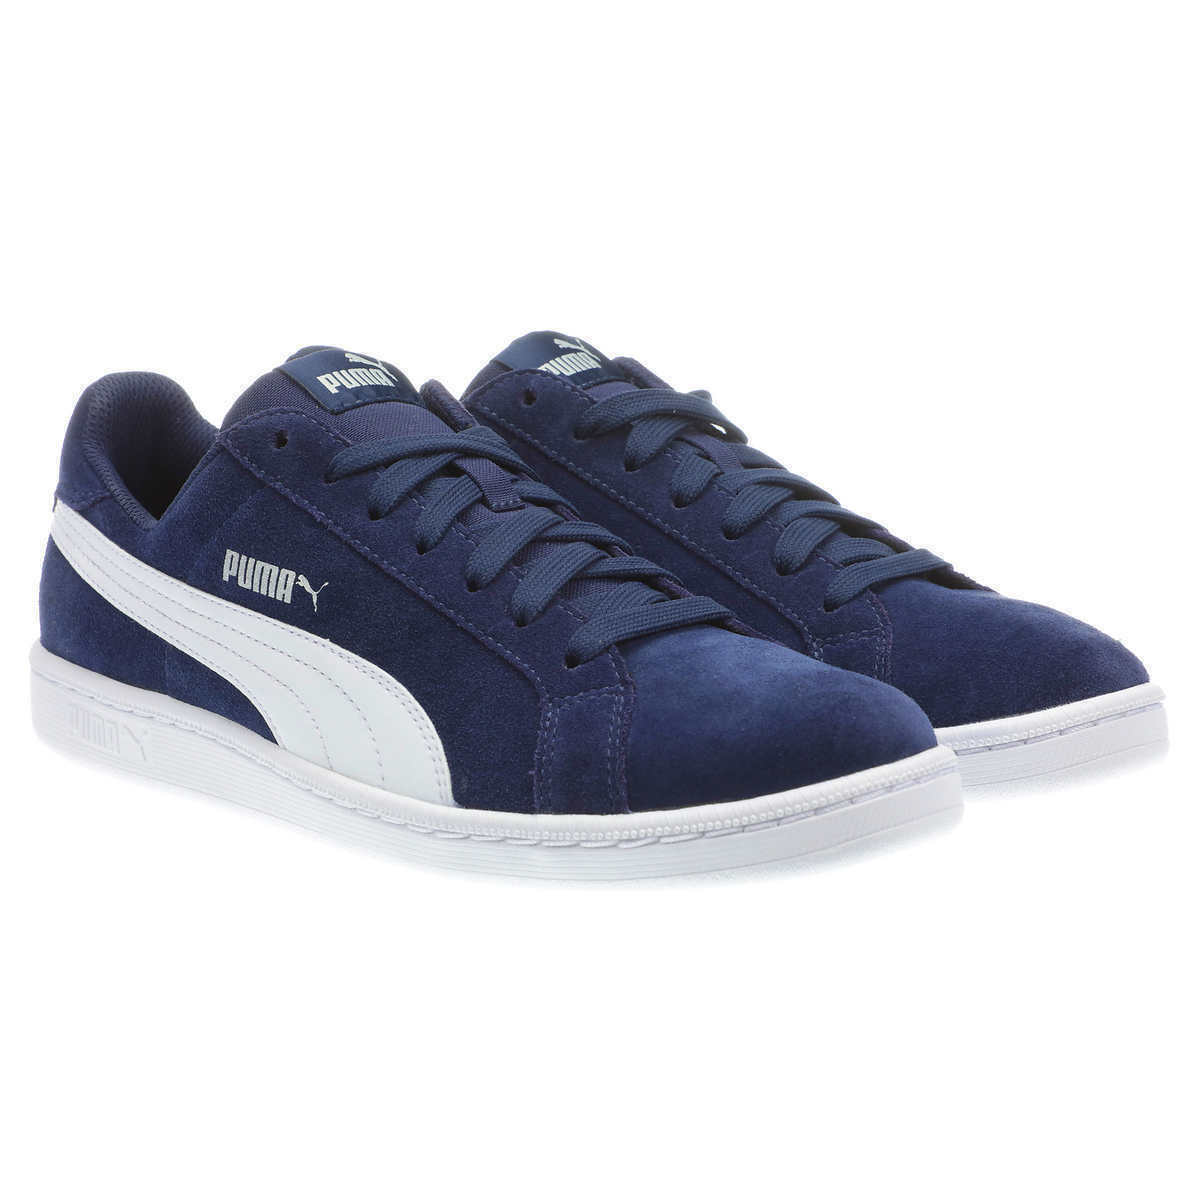 super popular f5a9c f6f65 Genuine PUMA Suede Original Sneakers Men Walking Shoes Man Athletic Sports  · $24.99 · Athletic